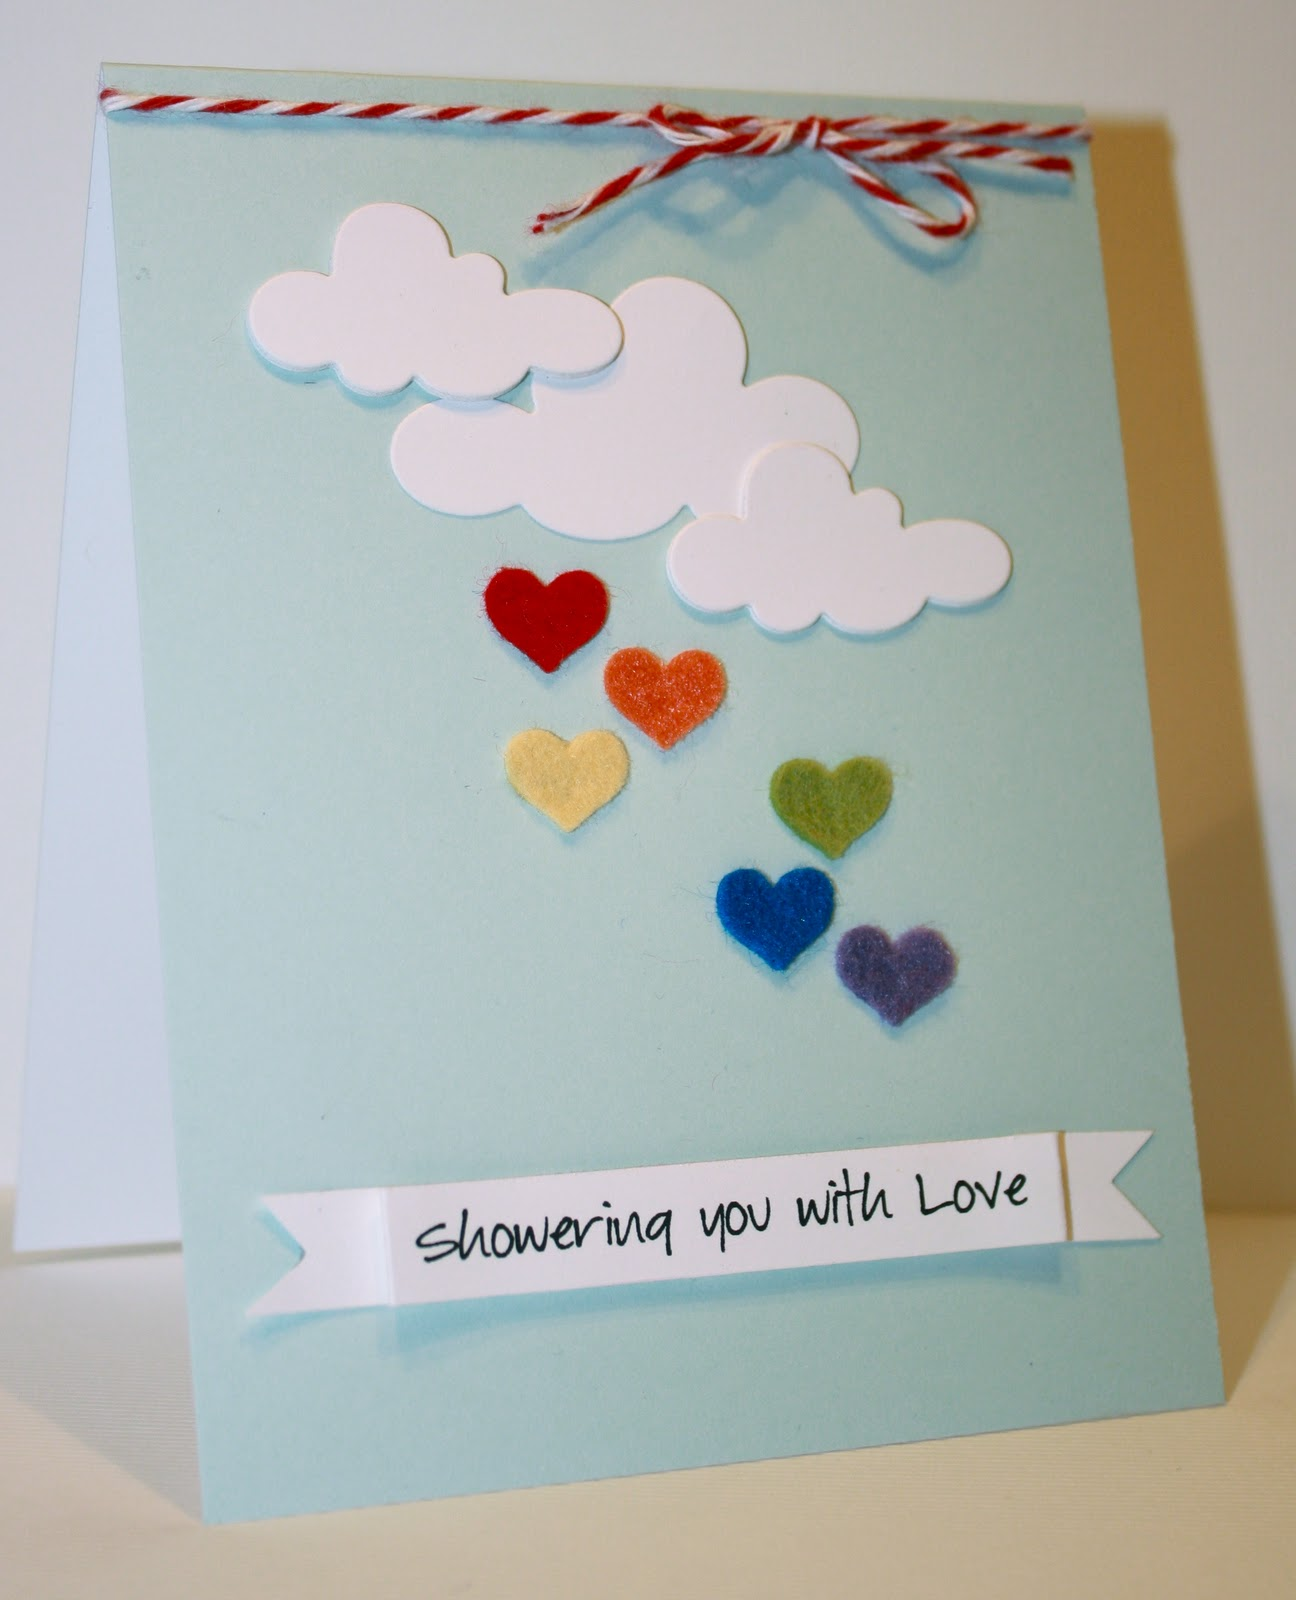 Nice Pinterest Card Making Ideas Part - 7: ... Lately Iu0027ve Been Pinning A Lot Of Things On Pinterest Involving Hearts,  Rainbows, And Clouds, So Thatu0027s Where I Drew My Inspiration From For This  Card.